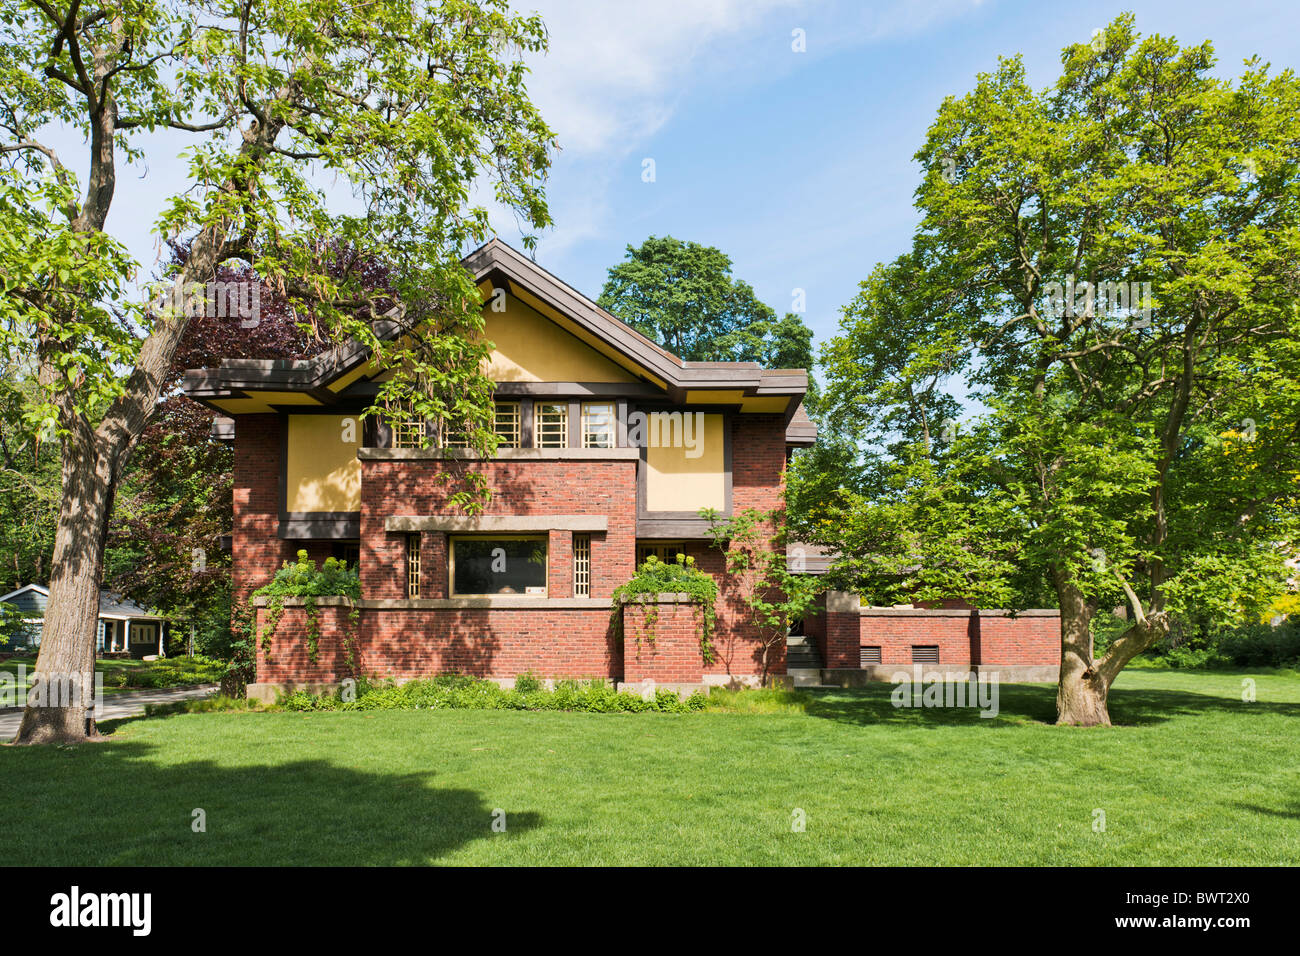 Peter A. Beachy House, Oak Park, Chicago, Illinois - Stock Image